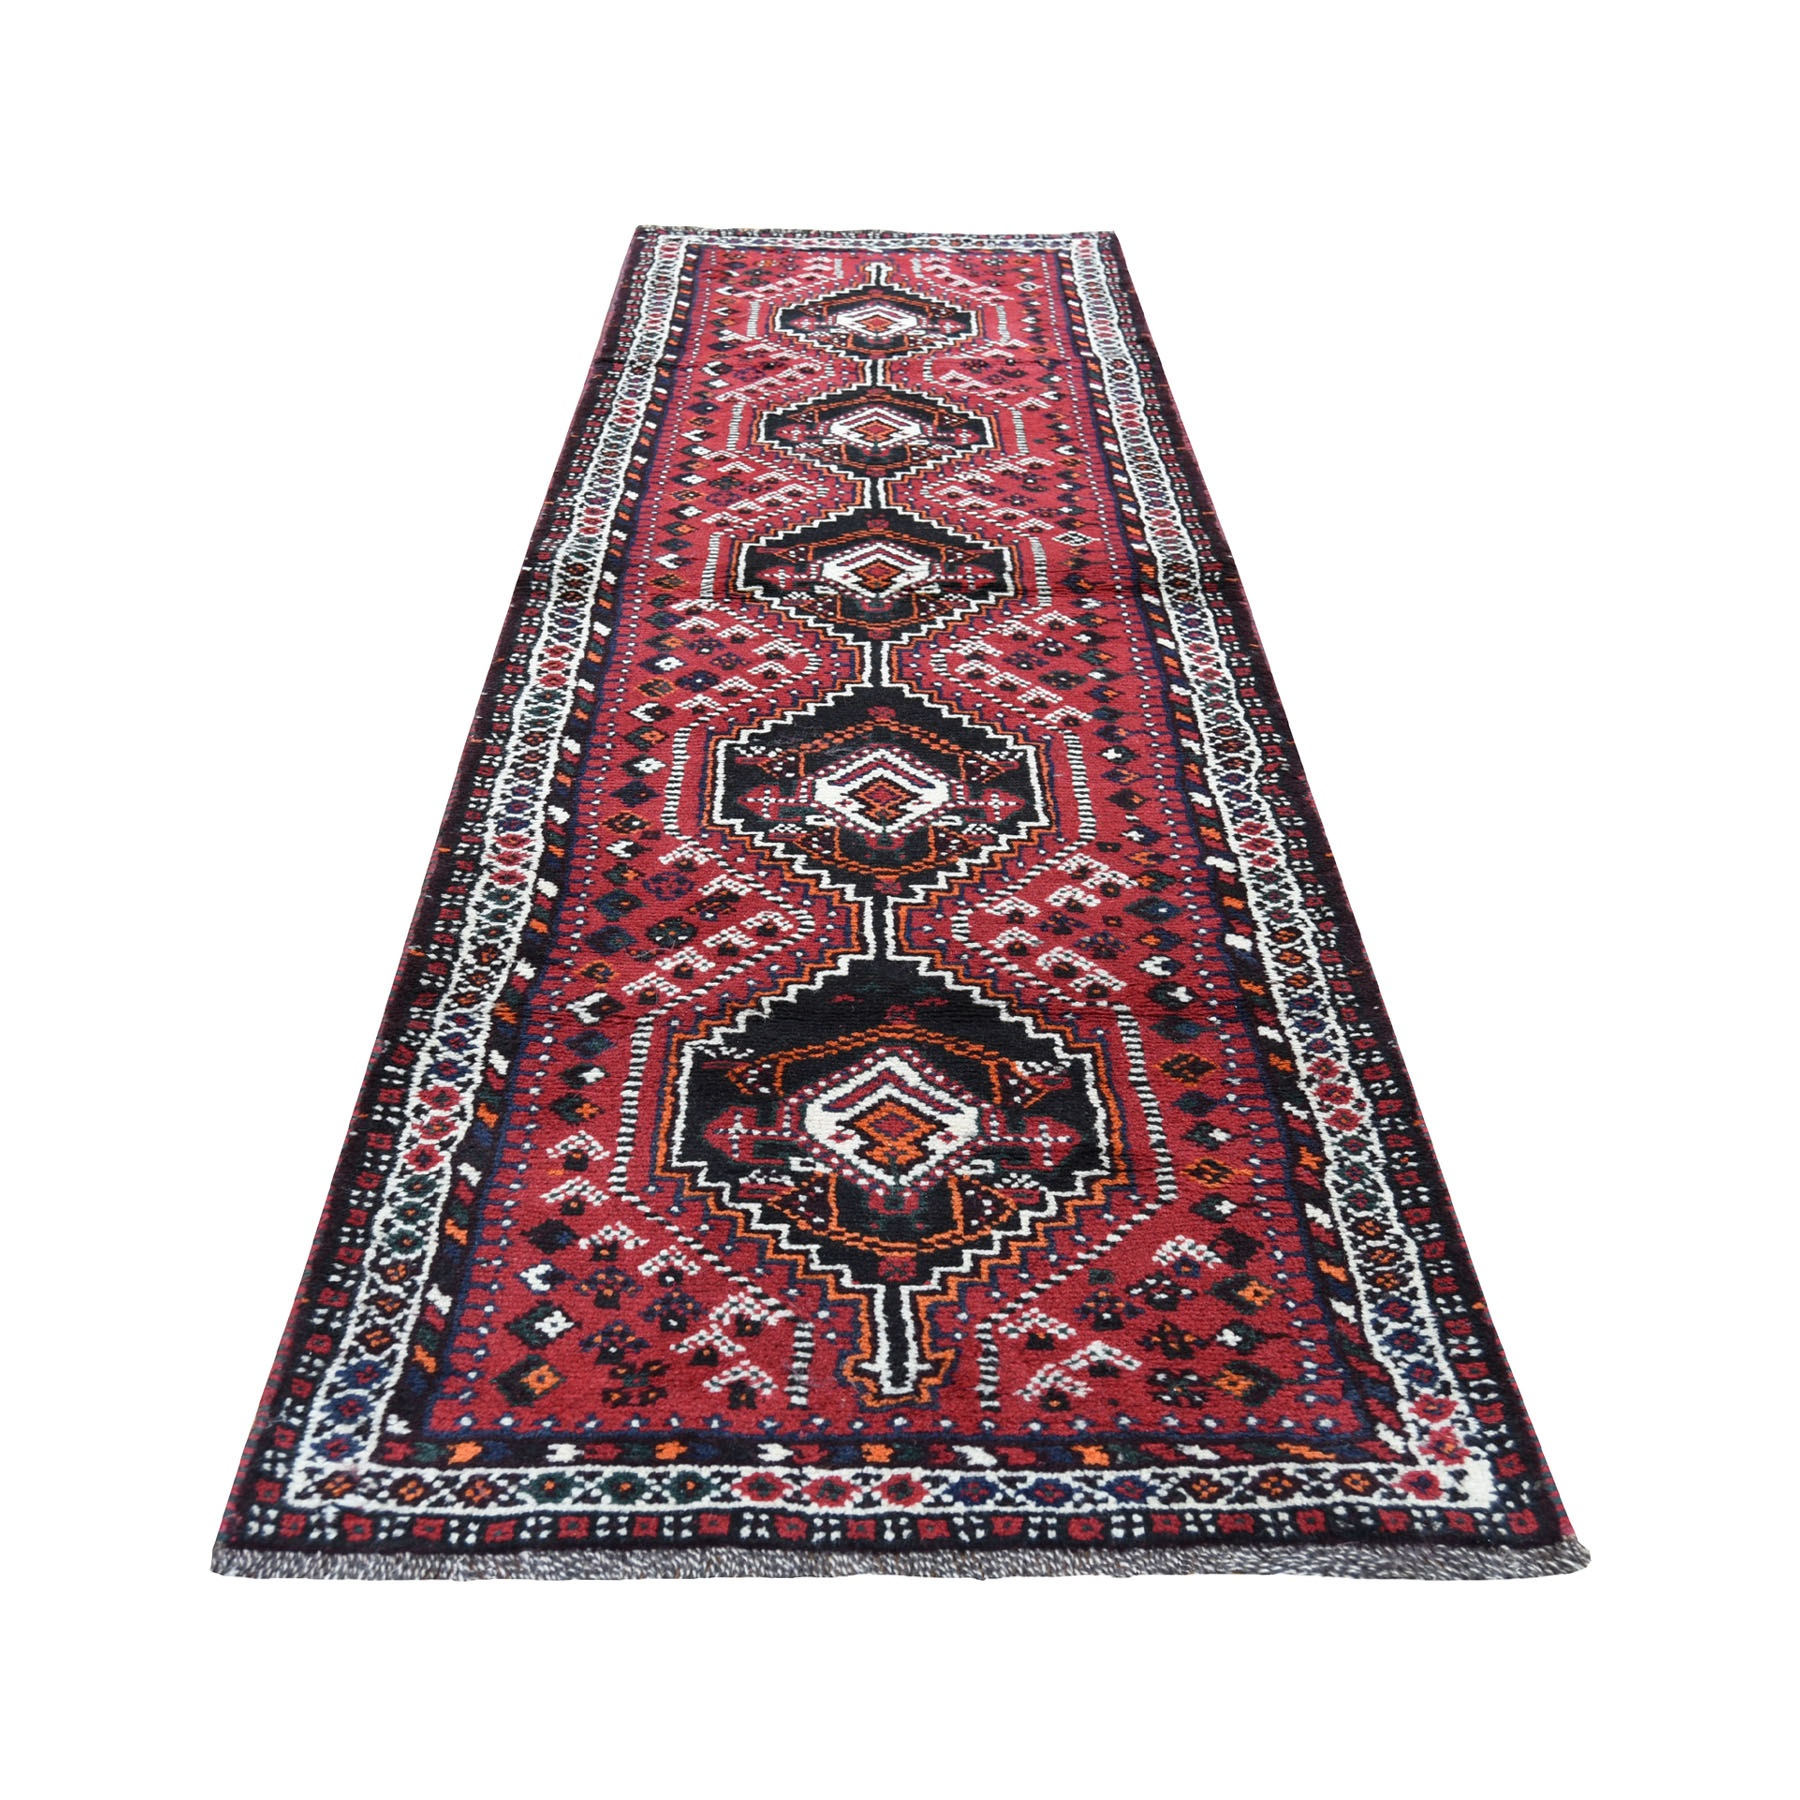 "2'7""X9'5"" Red New Persian Shiraz Pure Wool Narrow Runner Hand-Knotted Oriental Rug moad68b9"